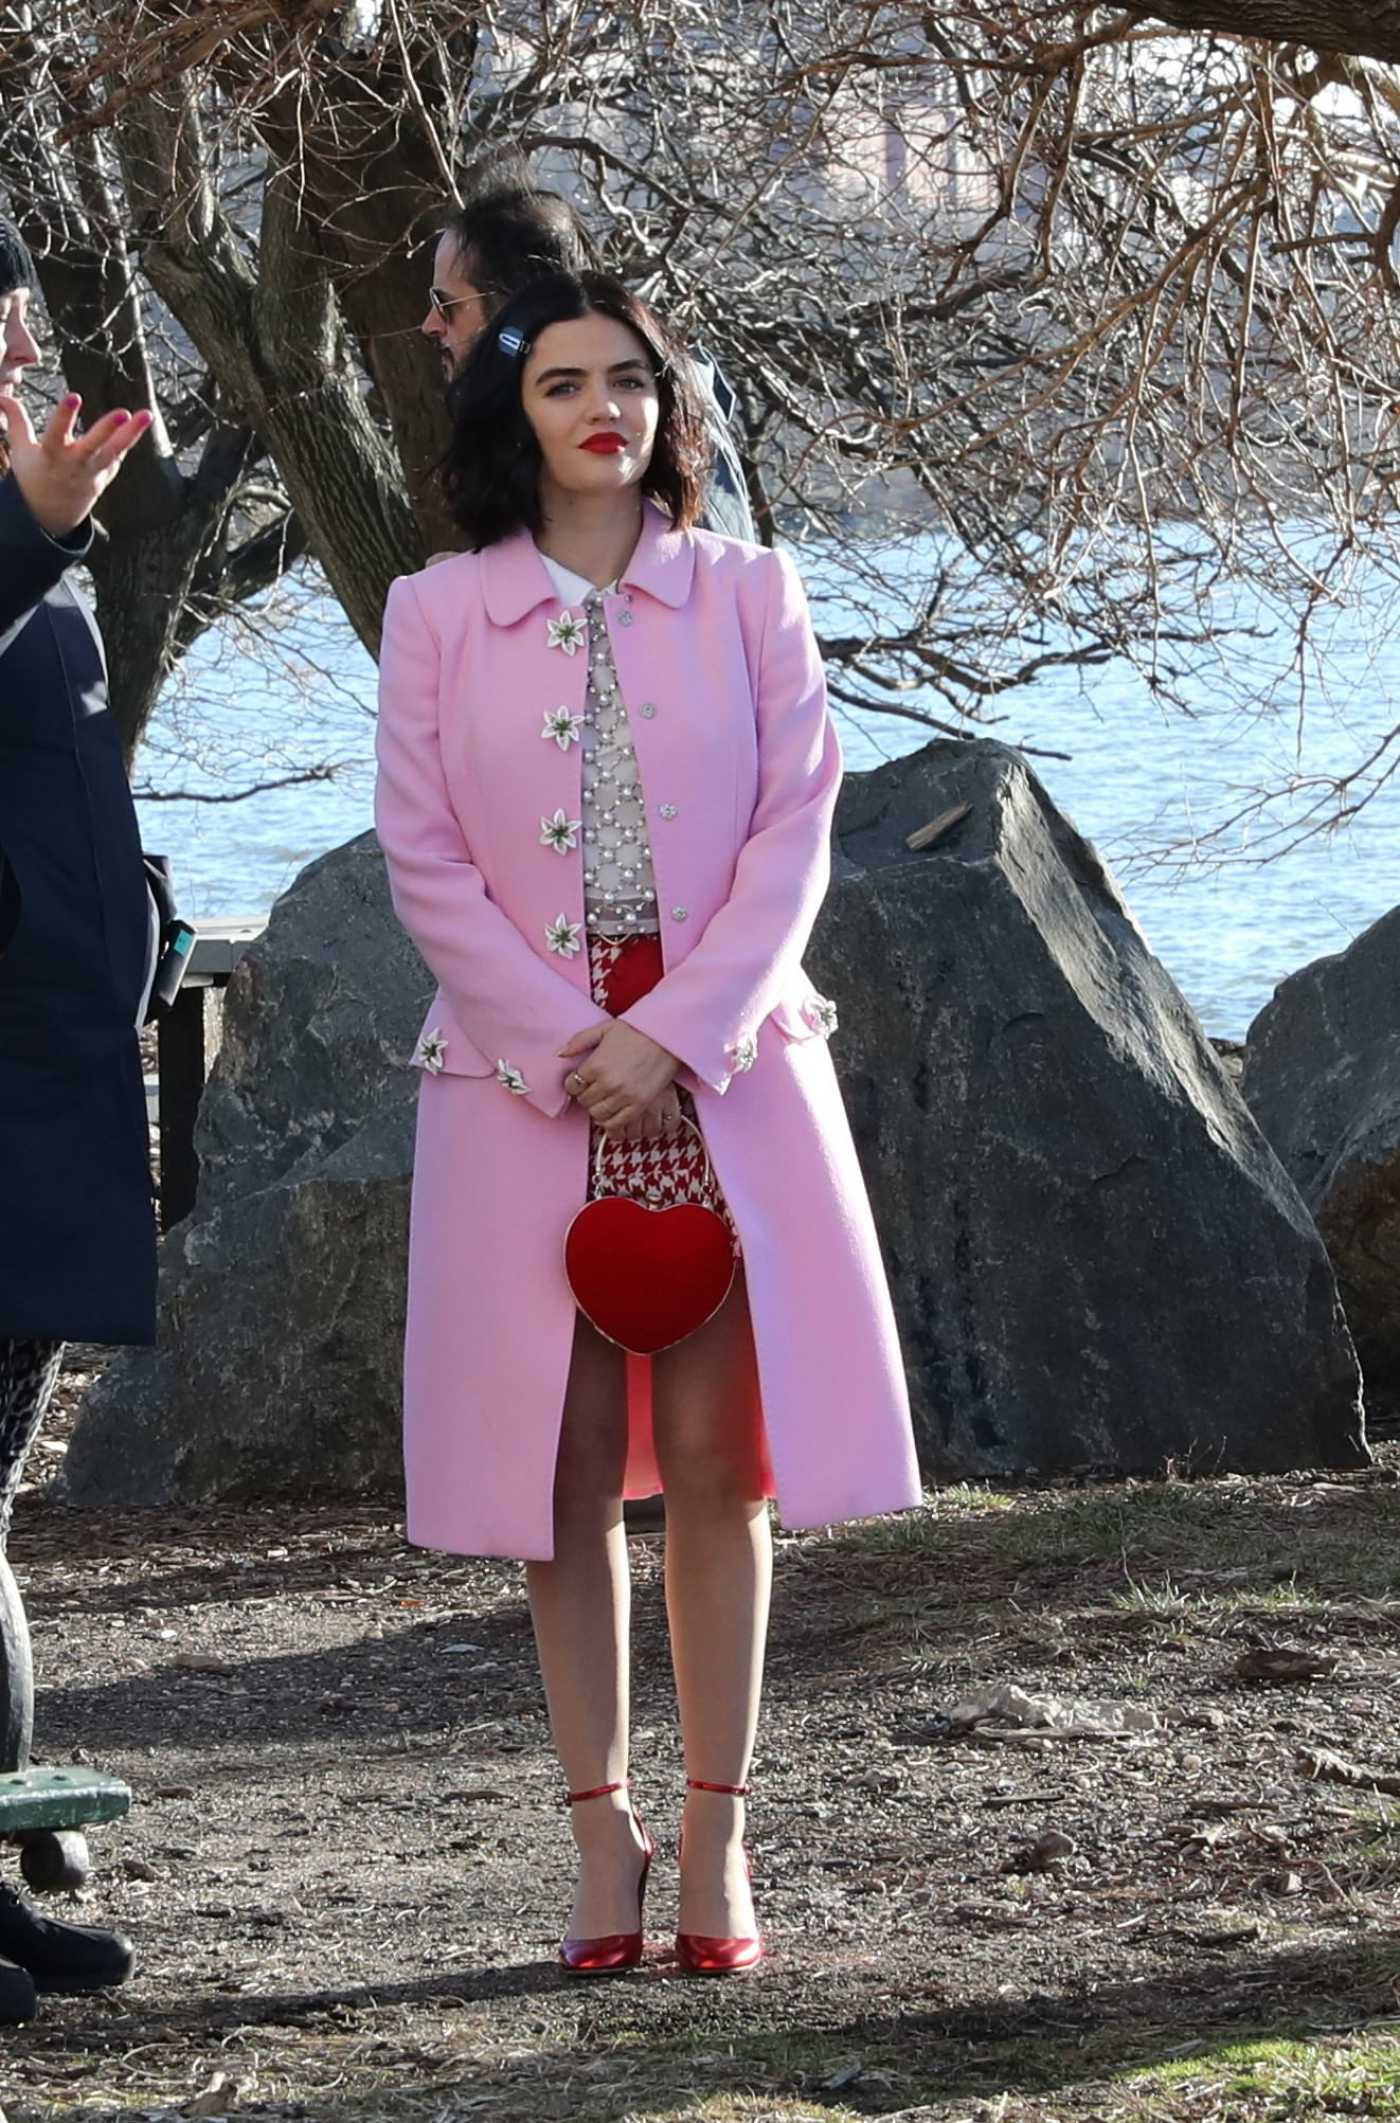 Lucy Hale in a Pink Coat on the Set of the Katy Keene in New York 02/04/2020